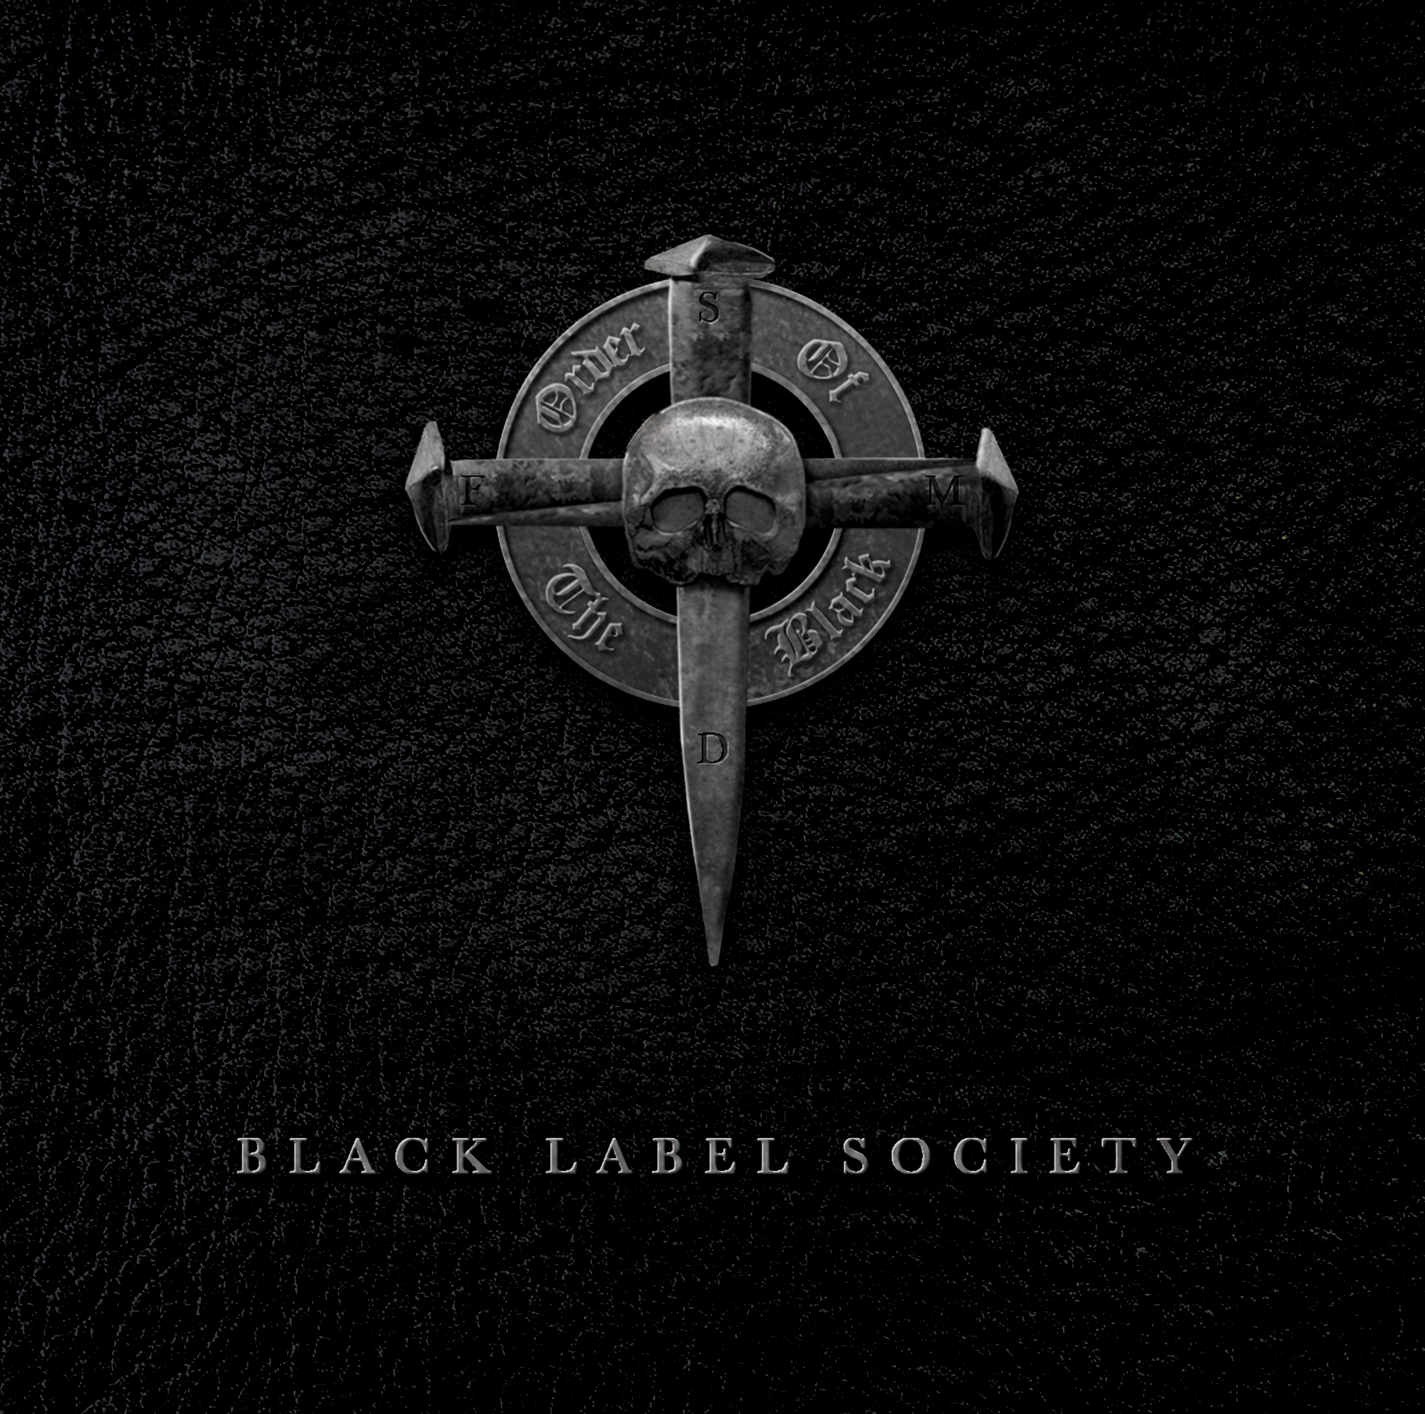 http://3.bp.blogspot.com/-MIJMsGDEO7A/TWg3cZCSorI/AAAAAAAAjXw/MdFwlFwsIlA/s1600/Black-Label-Society-ORDER-OF-THE-BLACK-North-American-album-cover2.jpg